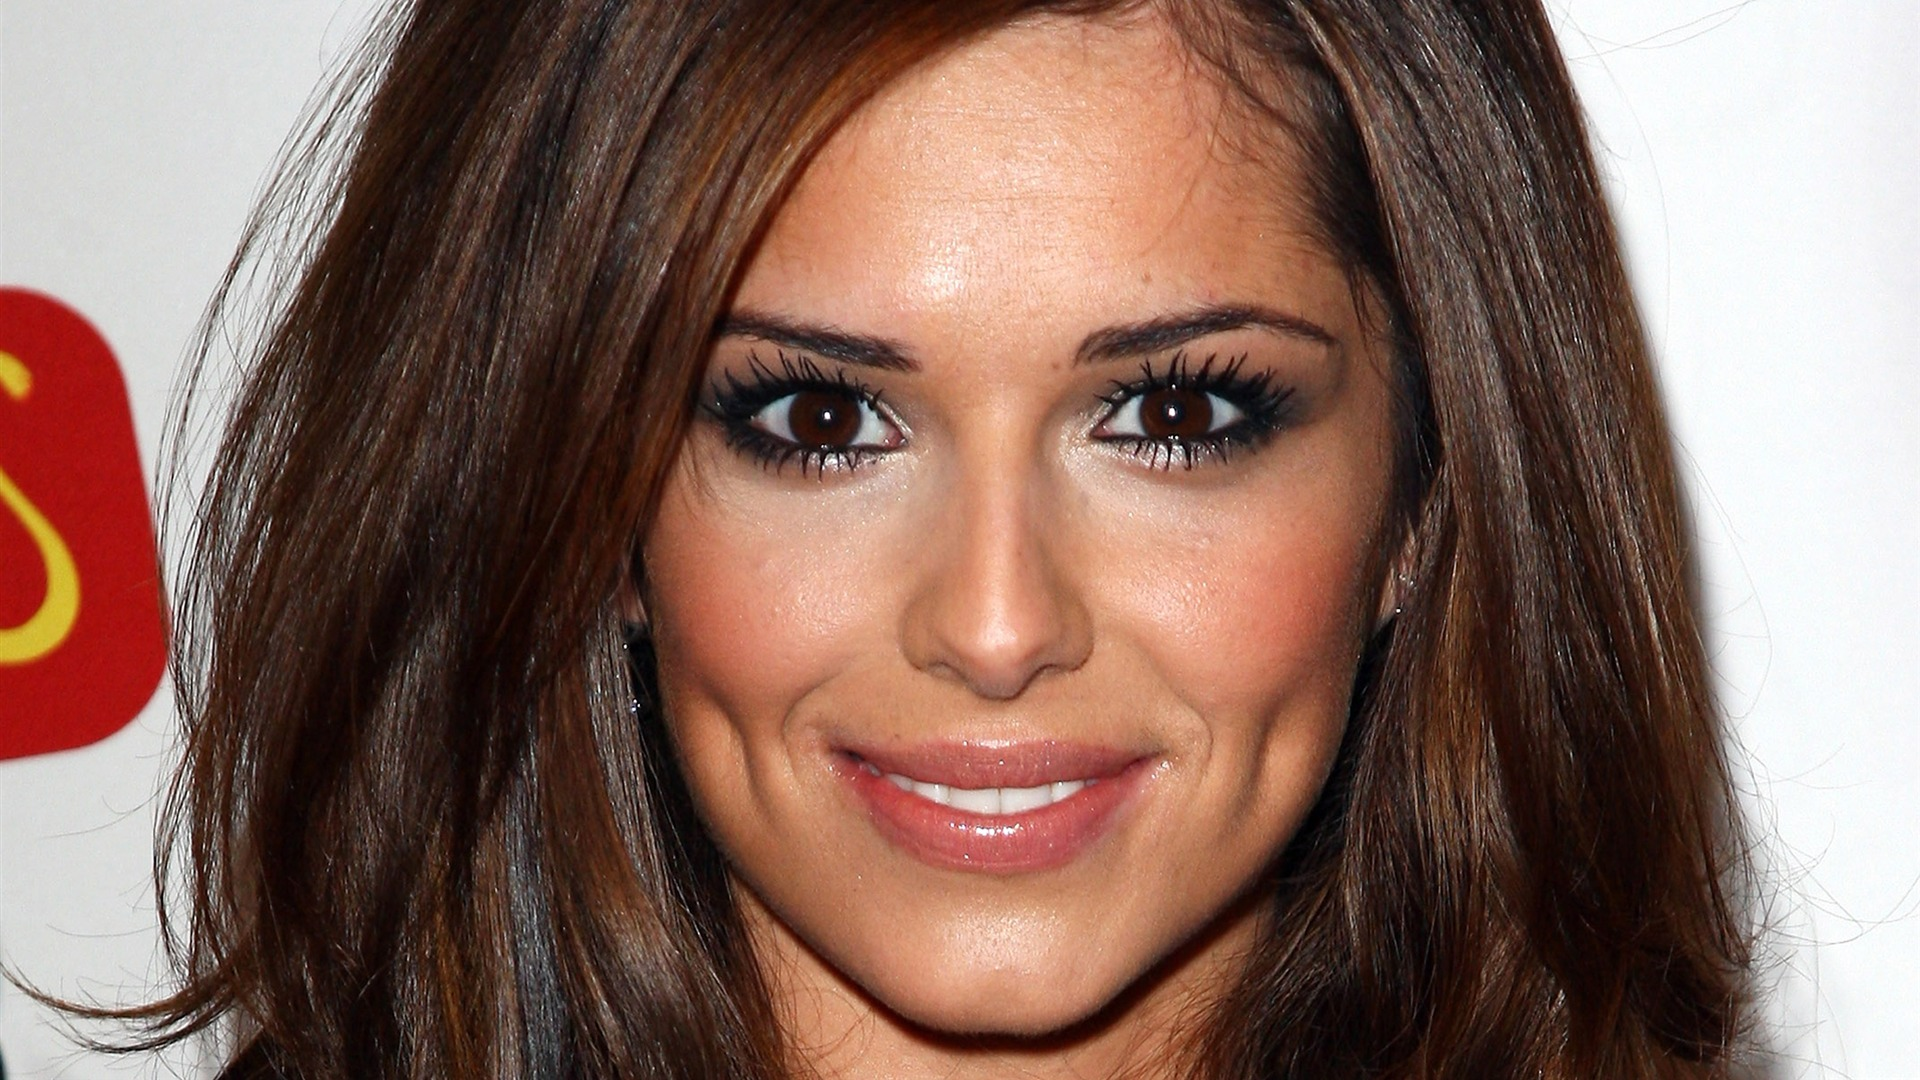 cheryl cole widescreen desktop wallpaper 967